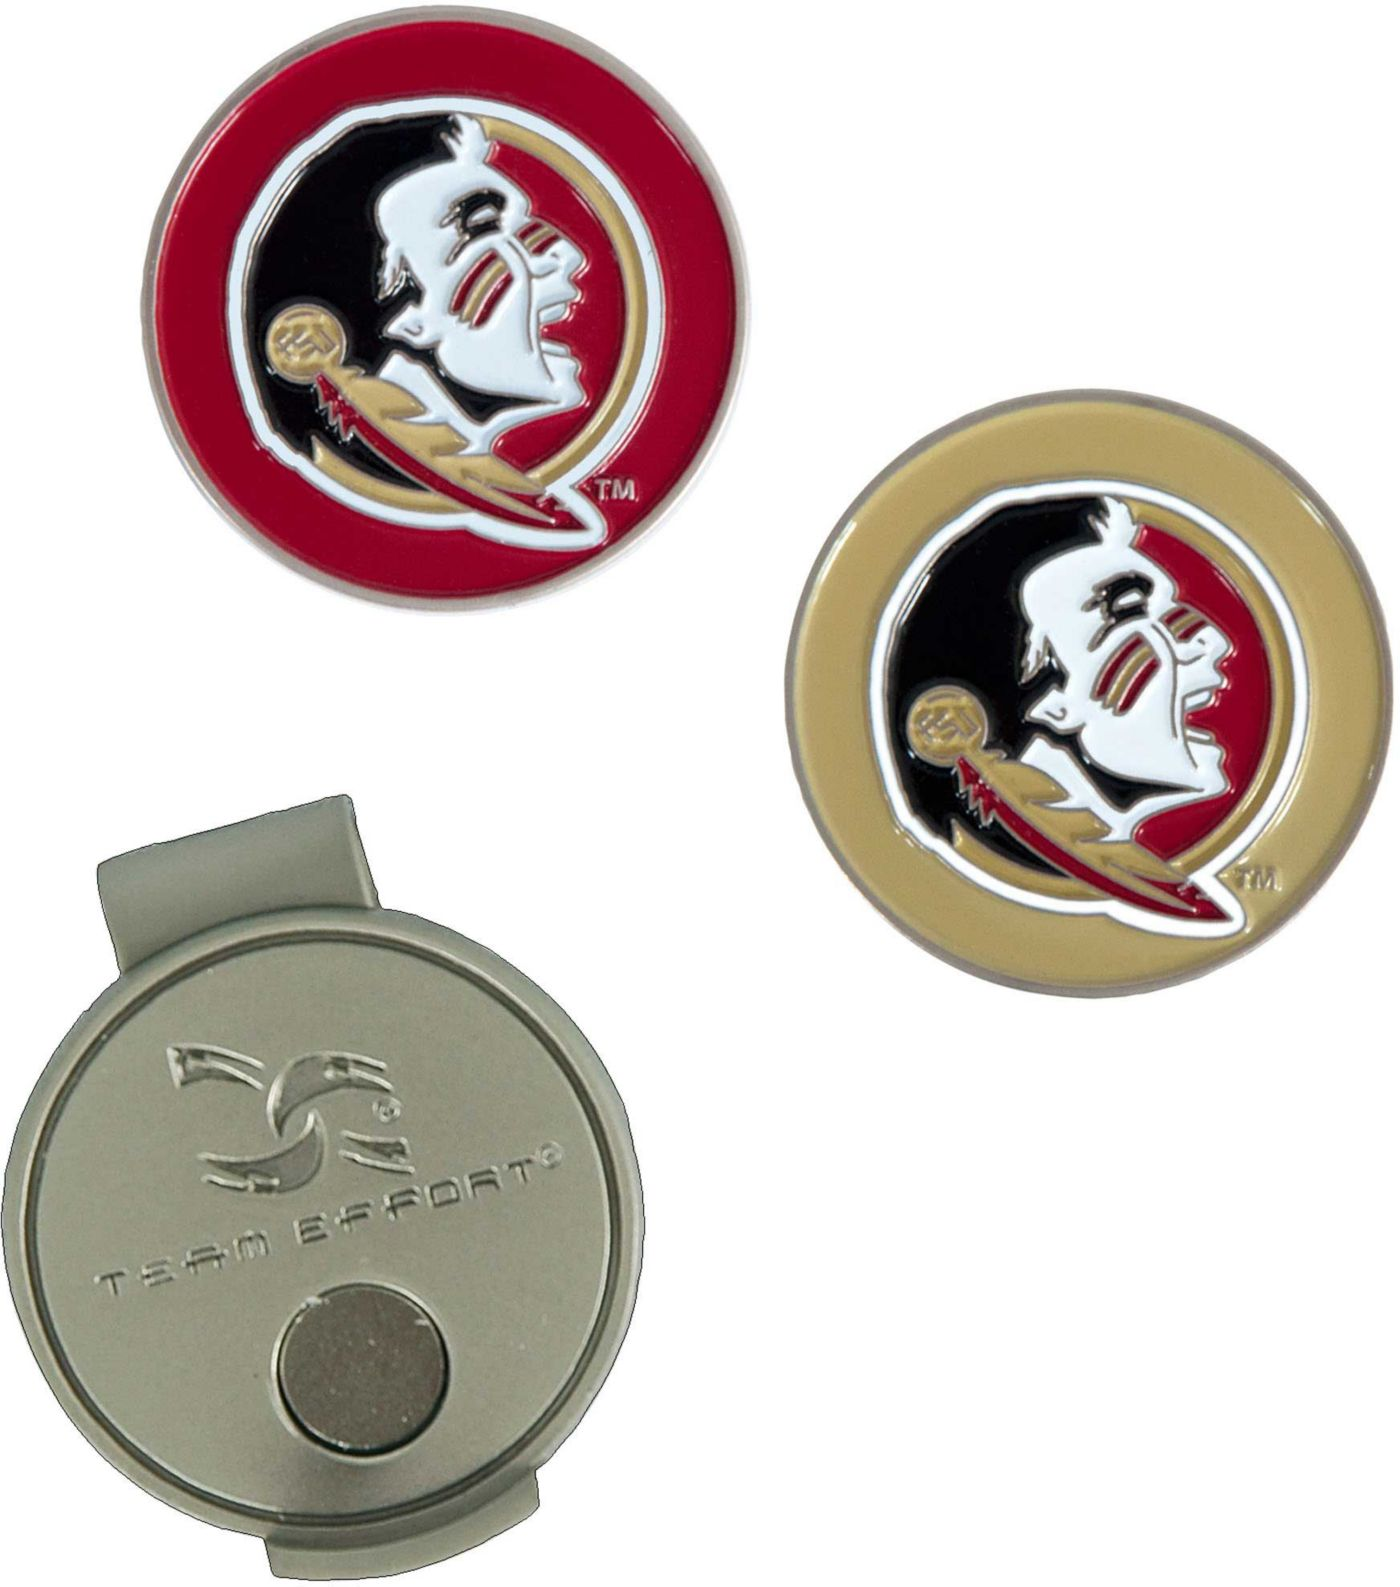 Team Effort Florida State Seminoles Hat Clip and Ball Markers Set